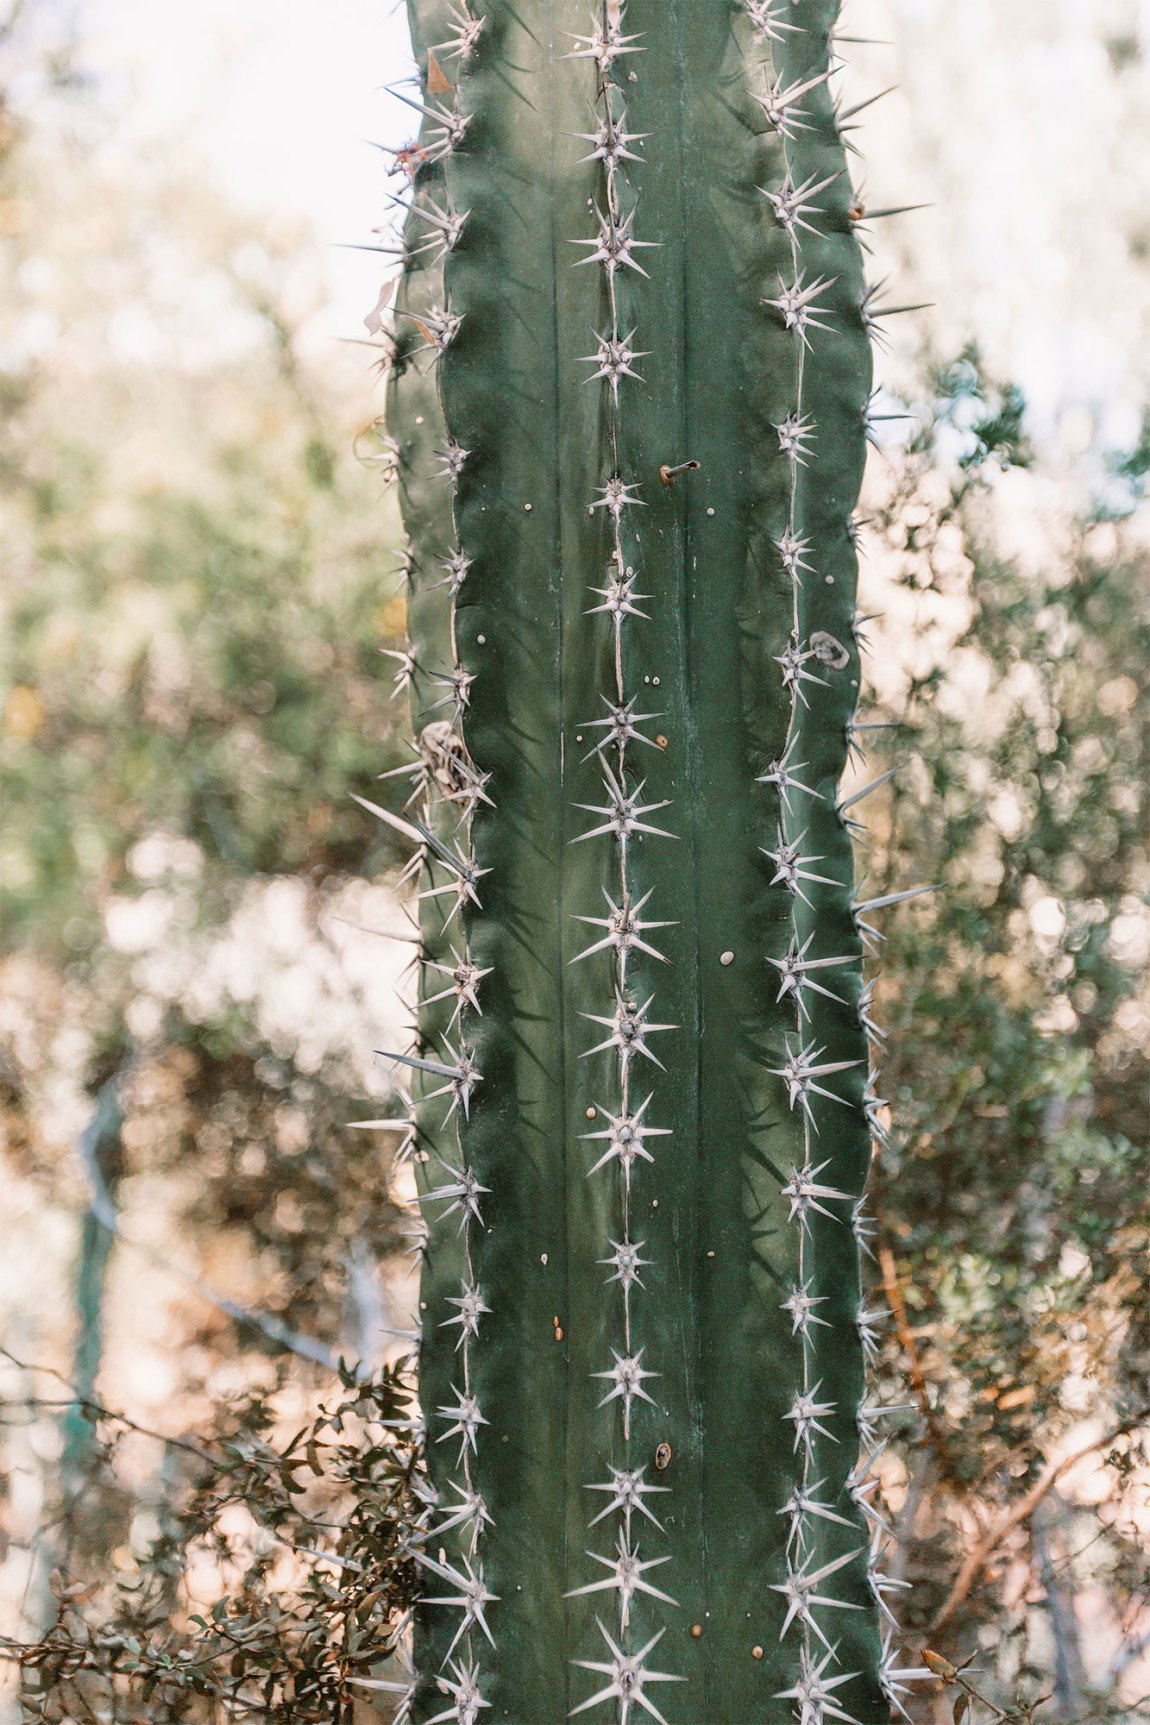 close up of prickers on a cactus plant